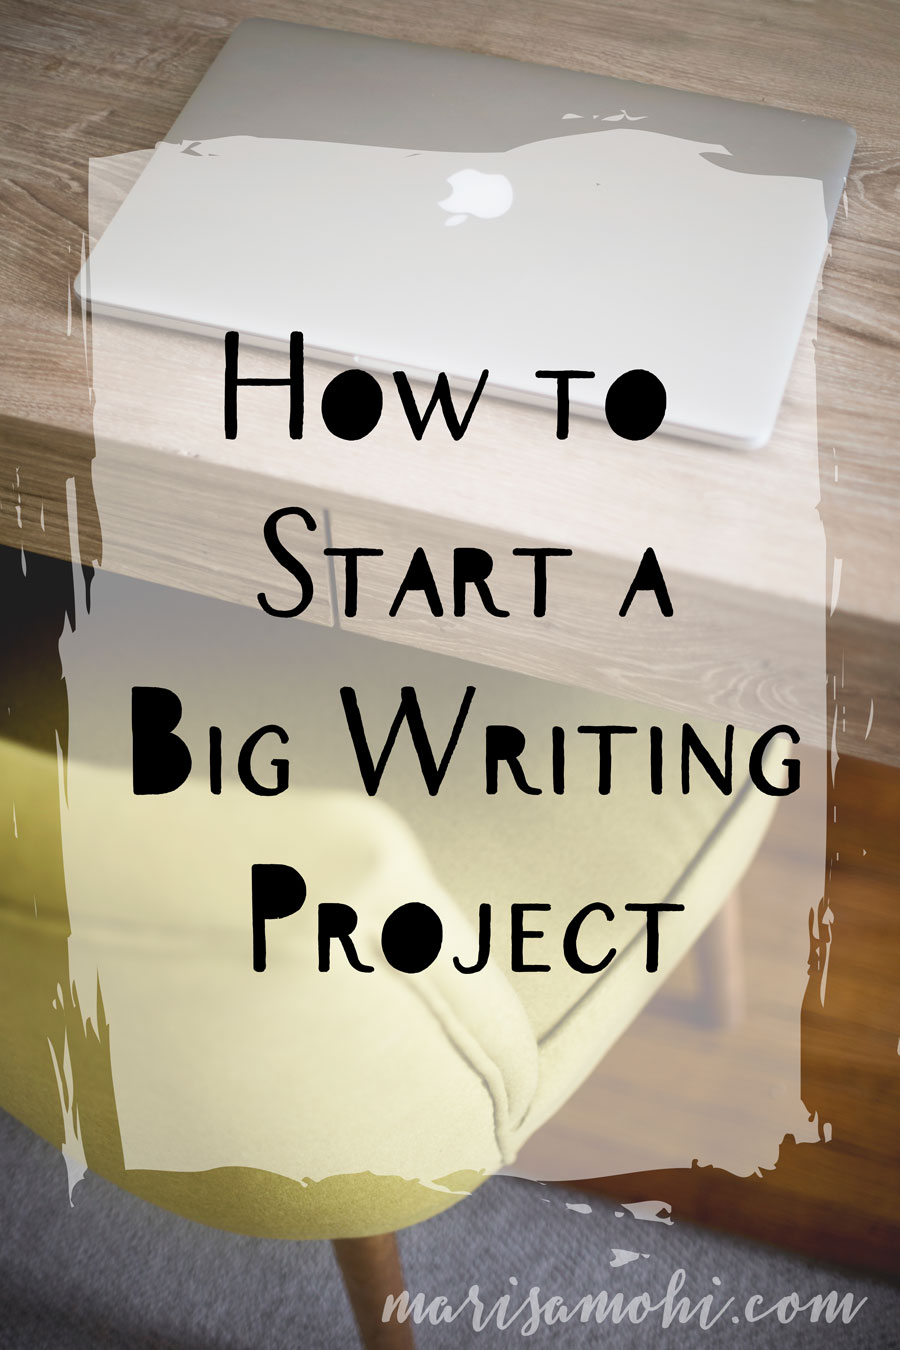 Tackling a big writing project can be tough! But I've got 5 tips to help you get through your next big writing project right here.